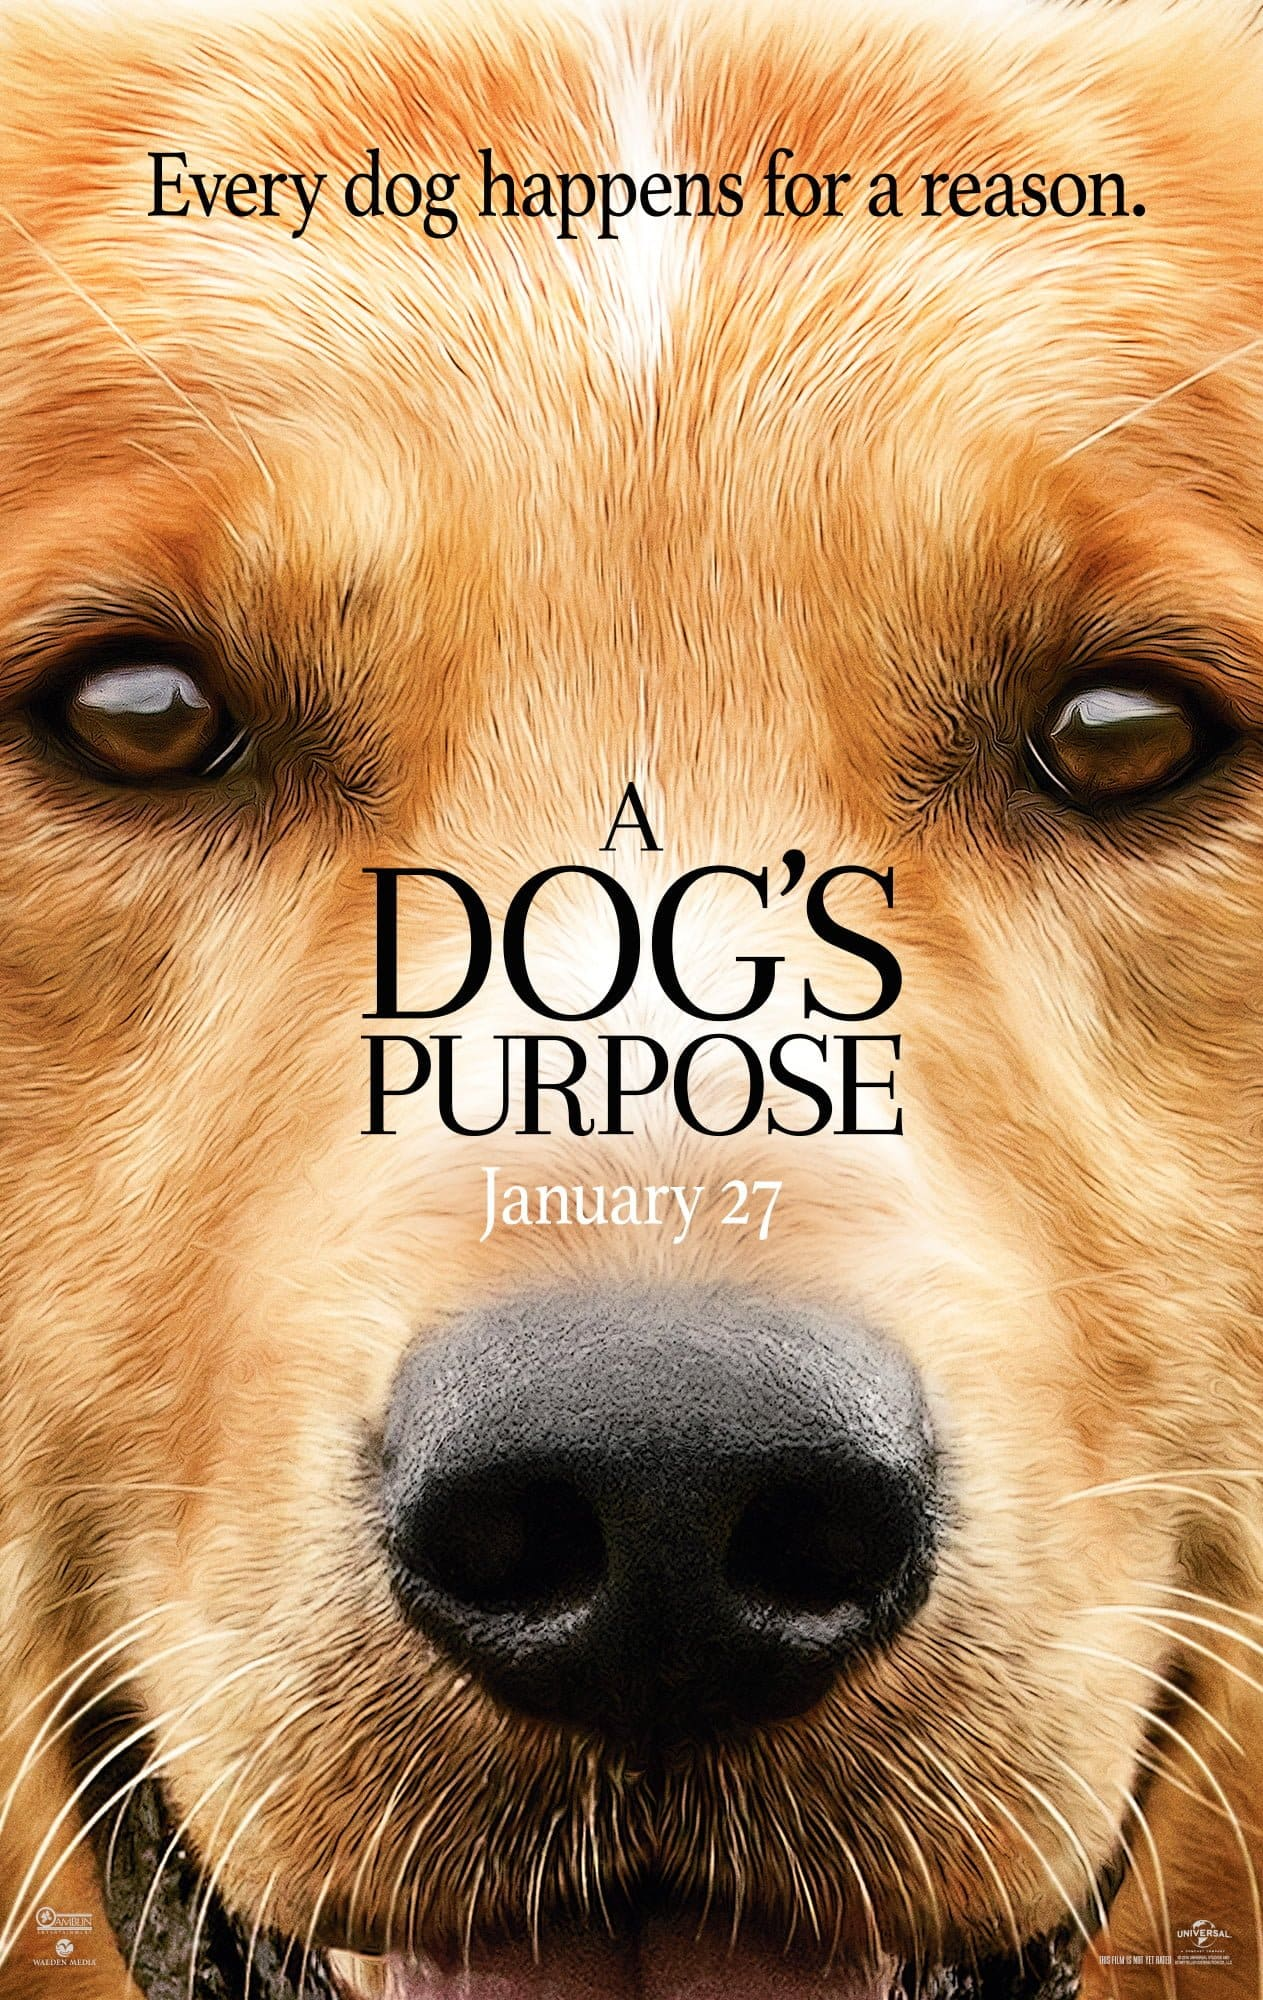 Every Dog Happens for a Reason A Dog's Purpose